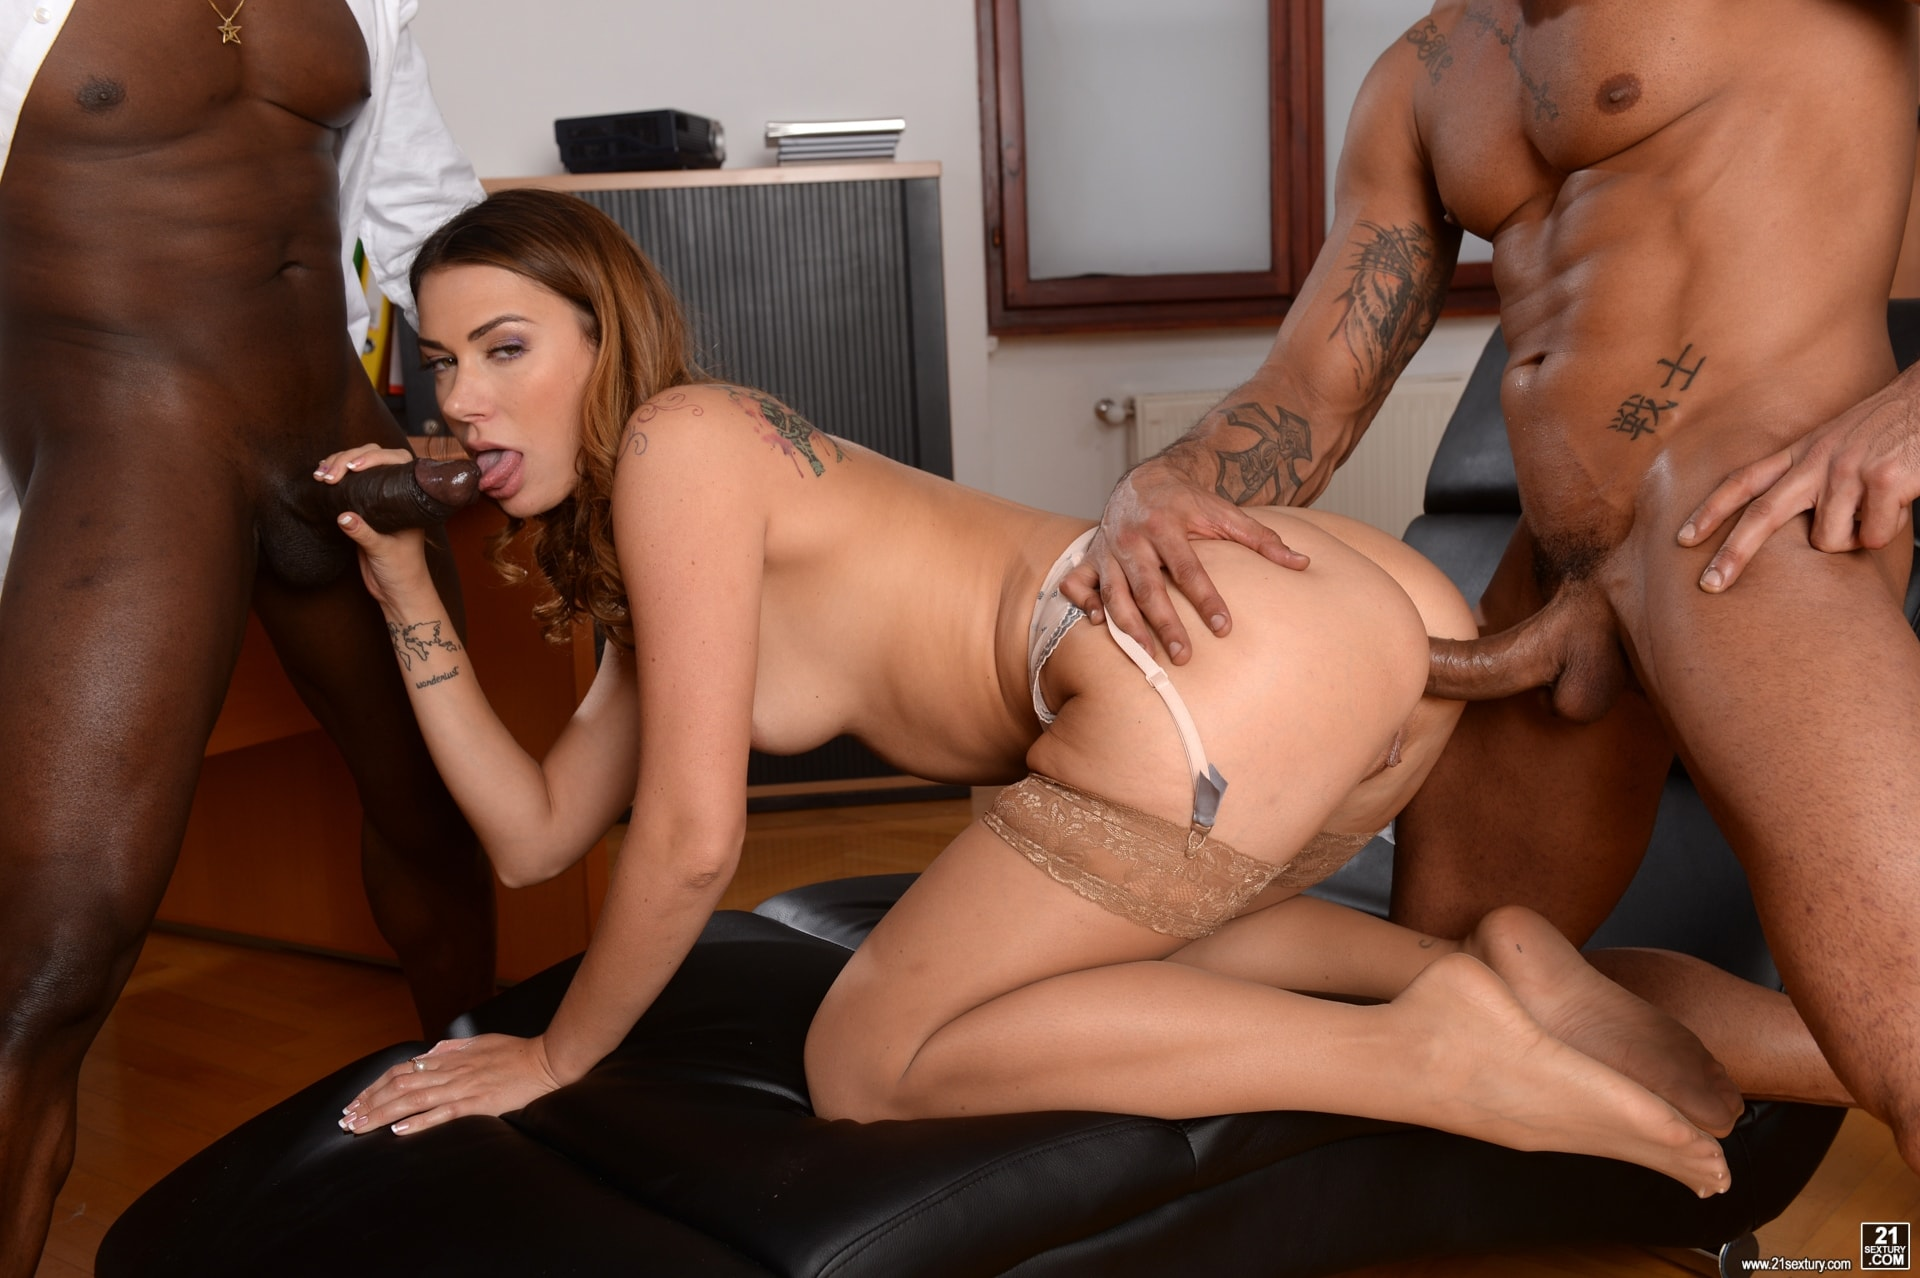 21Sextury 'My Bosses DP'd Me At Work' starring Ani Black Fox (Photo 209)